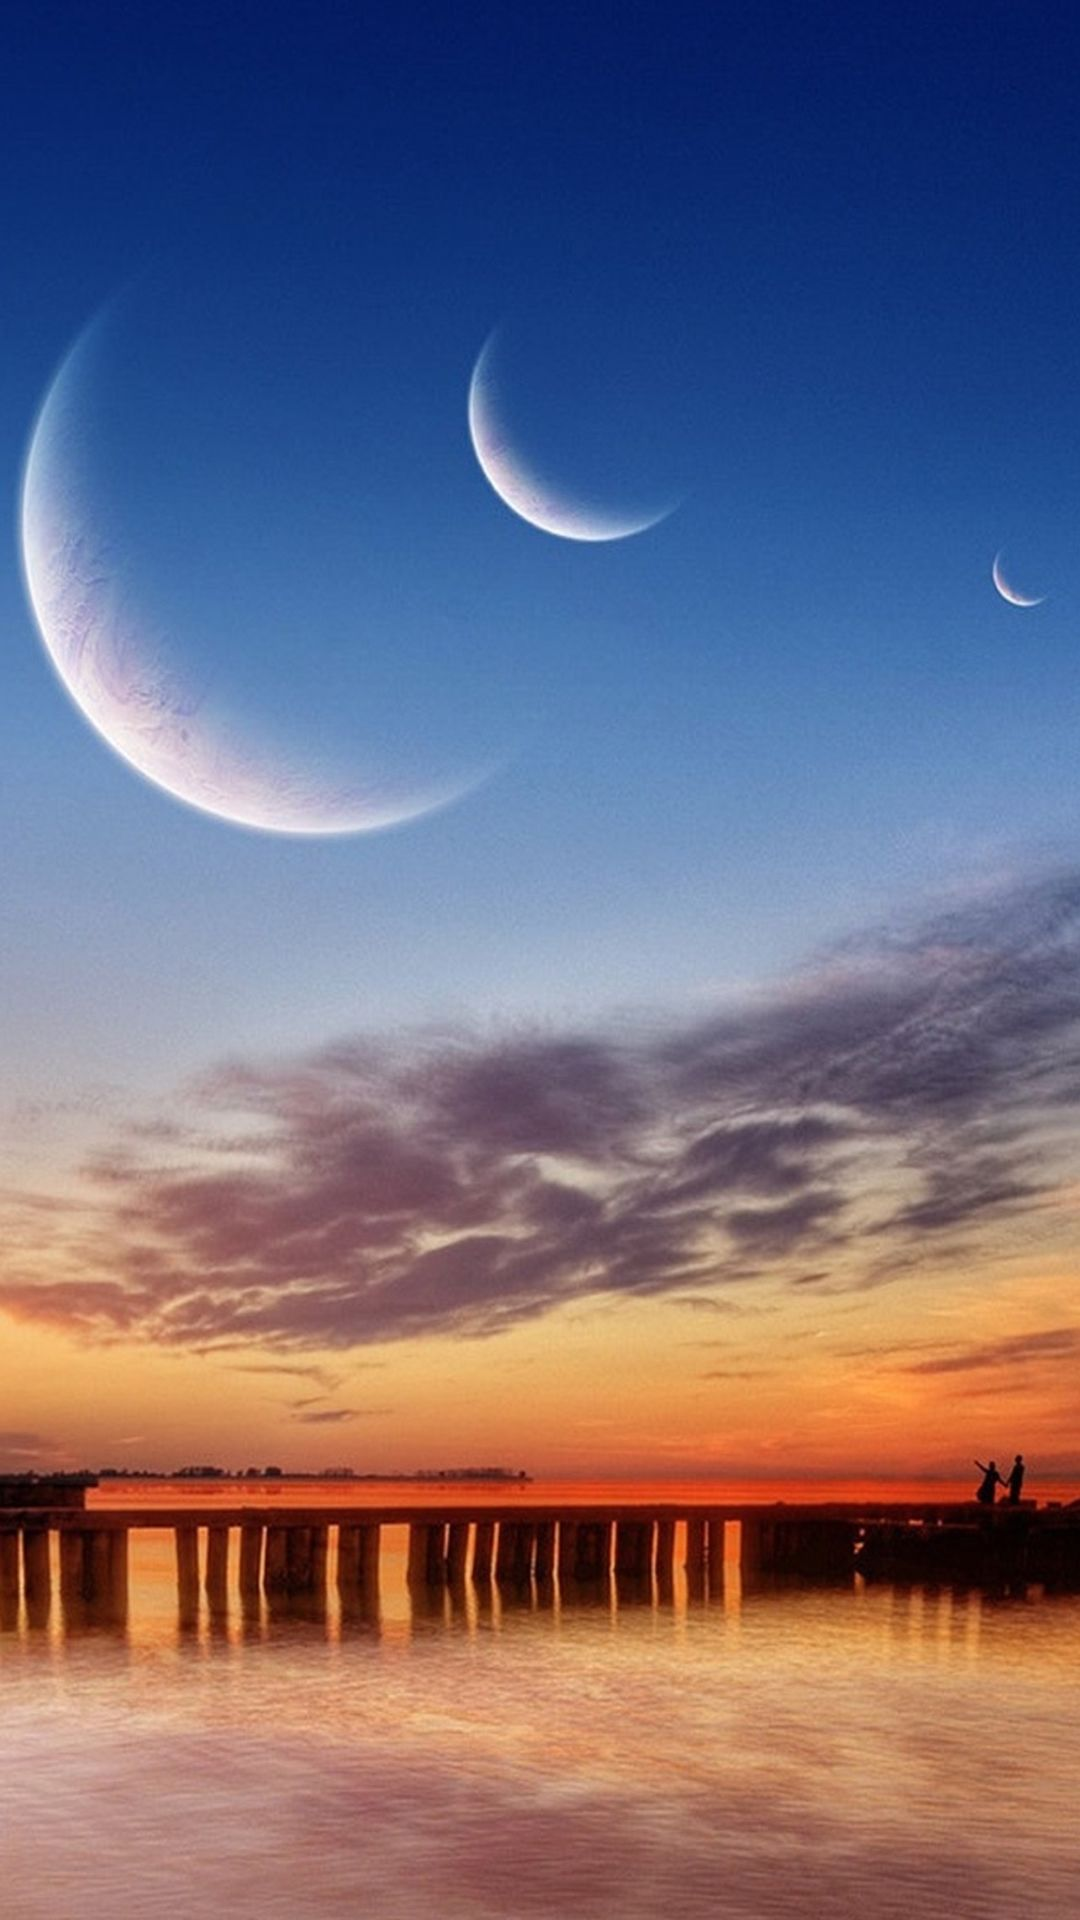 Nature Crescent Moon Outer Space View River Bridge Landscape